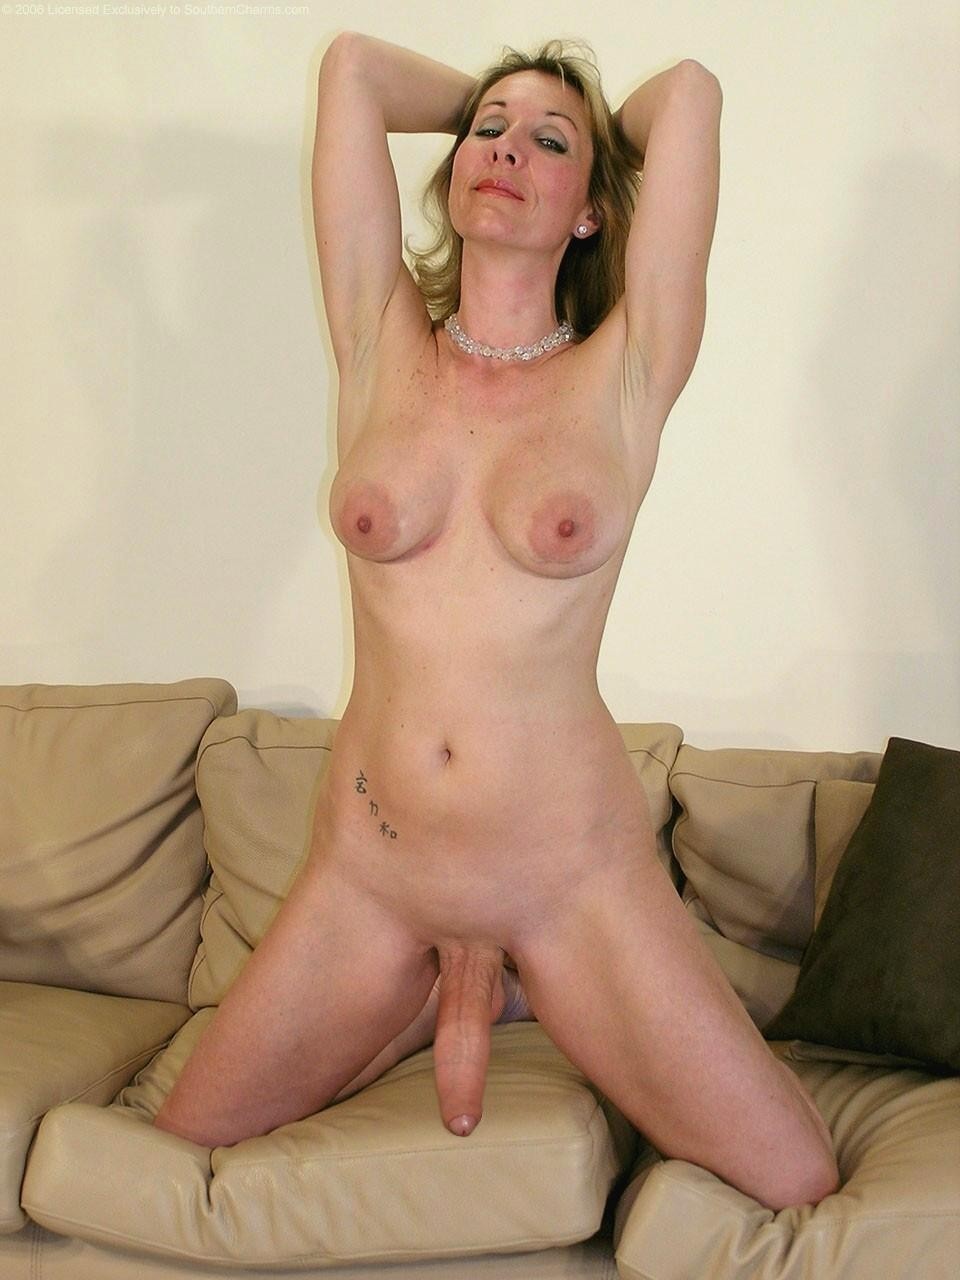 With big cock mature woman something